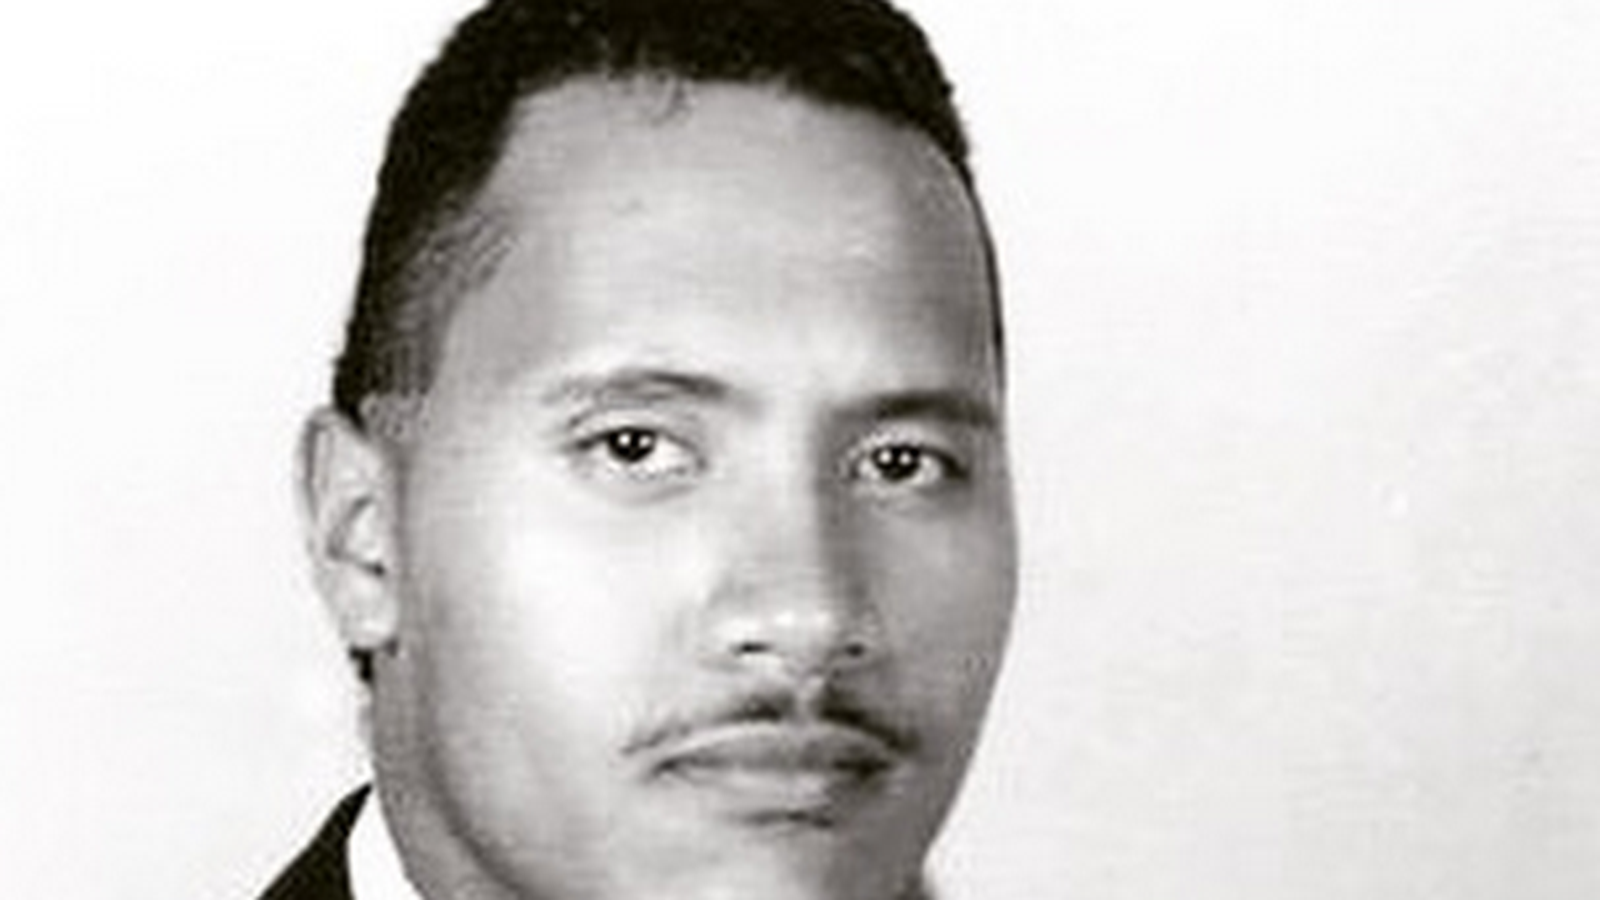 The Rock's High School Photo has Gone Viral (Look) - the_rock_mustache